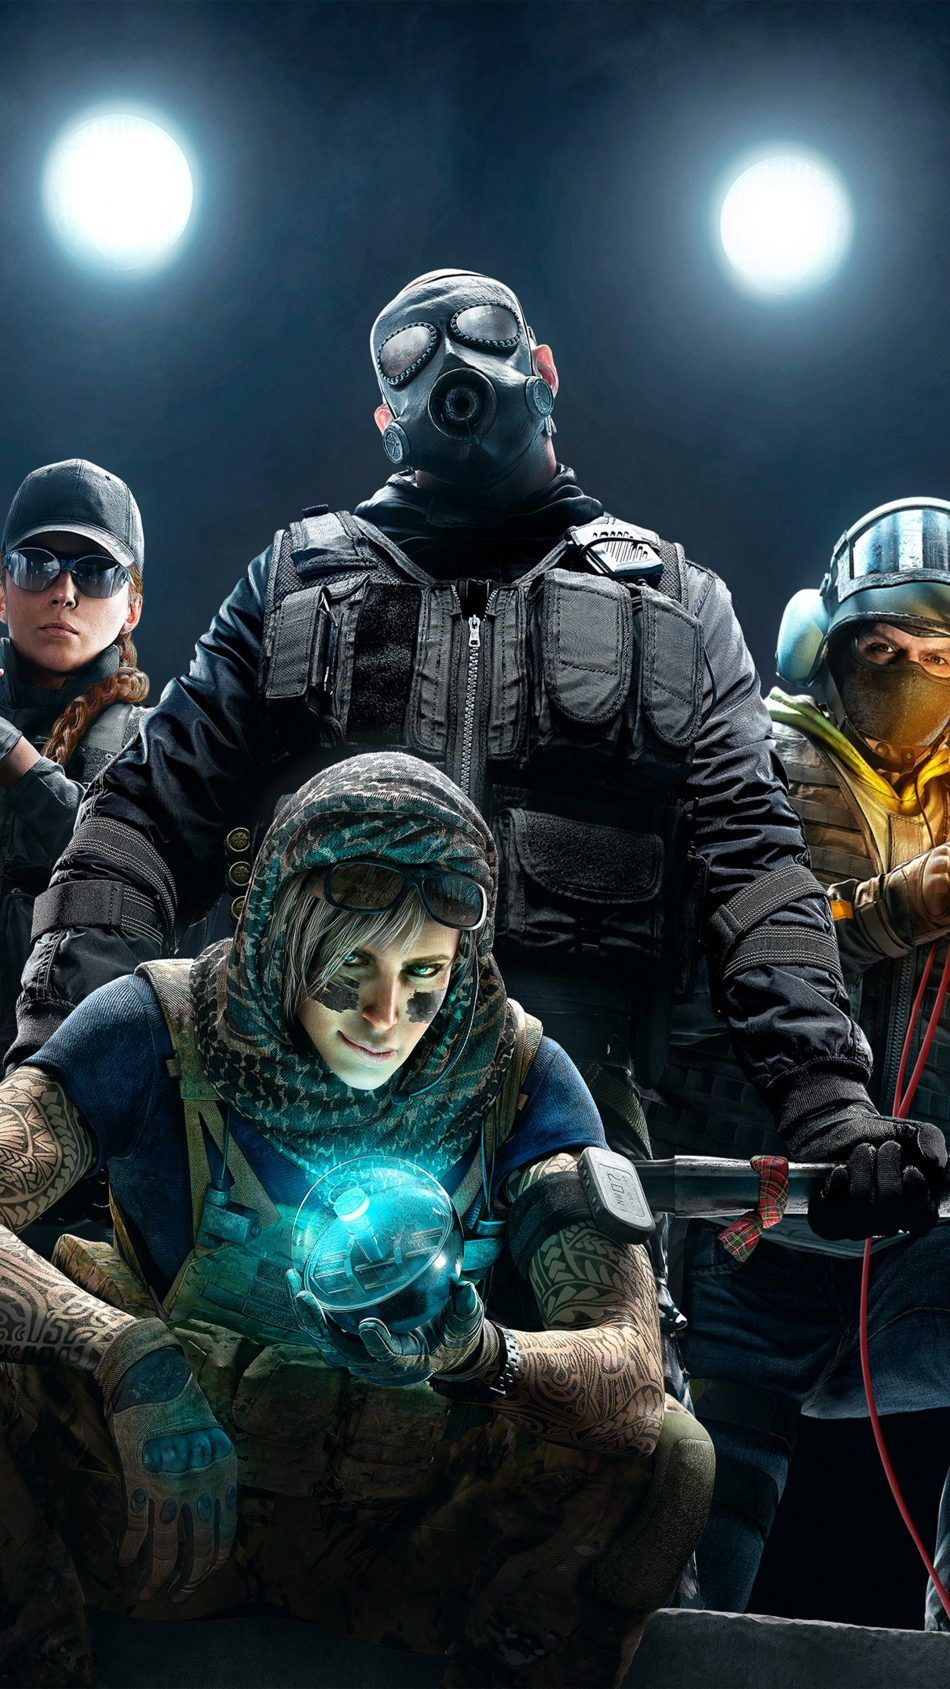 Tom Clancy S Rainbow Six Siege Video Game Free 4k Ultra Hd Mobile Wallpaper Tom Clancy S Rainbow Six Rainbow Six Siege Art Rainbow Wallpaper